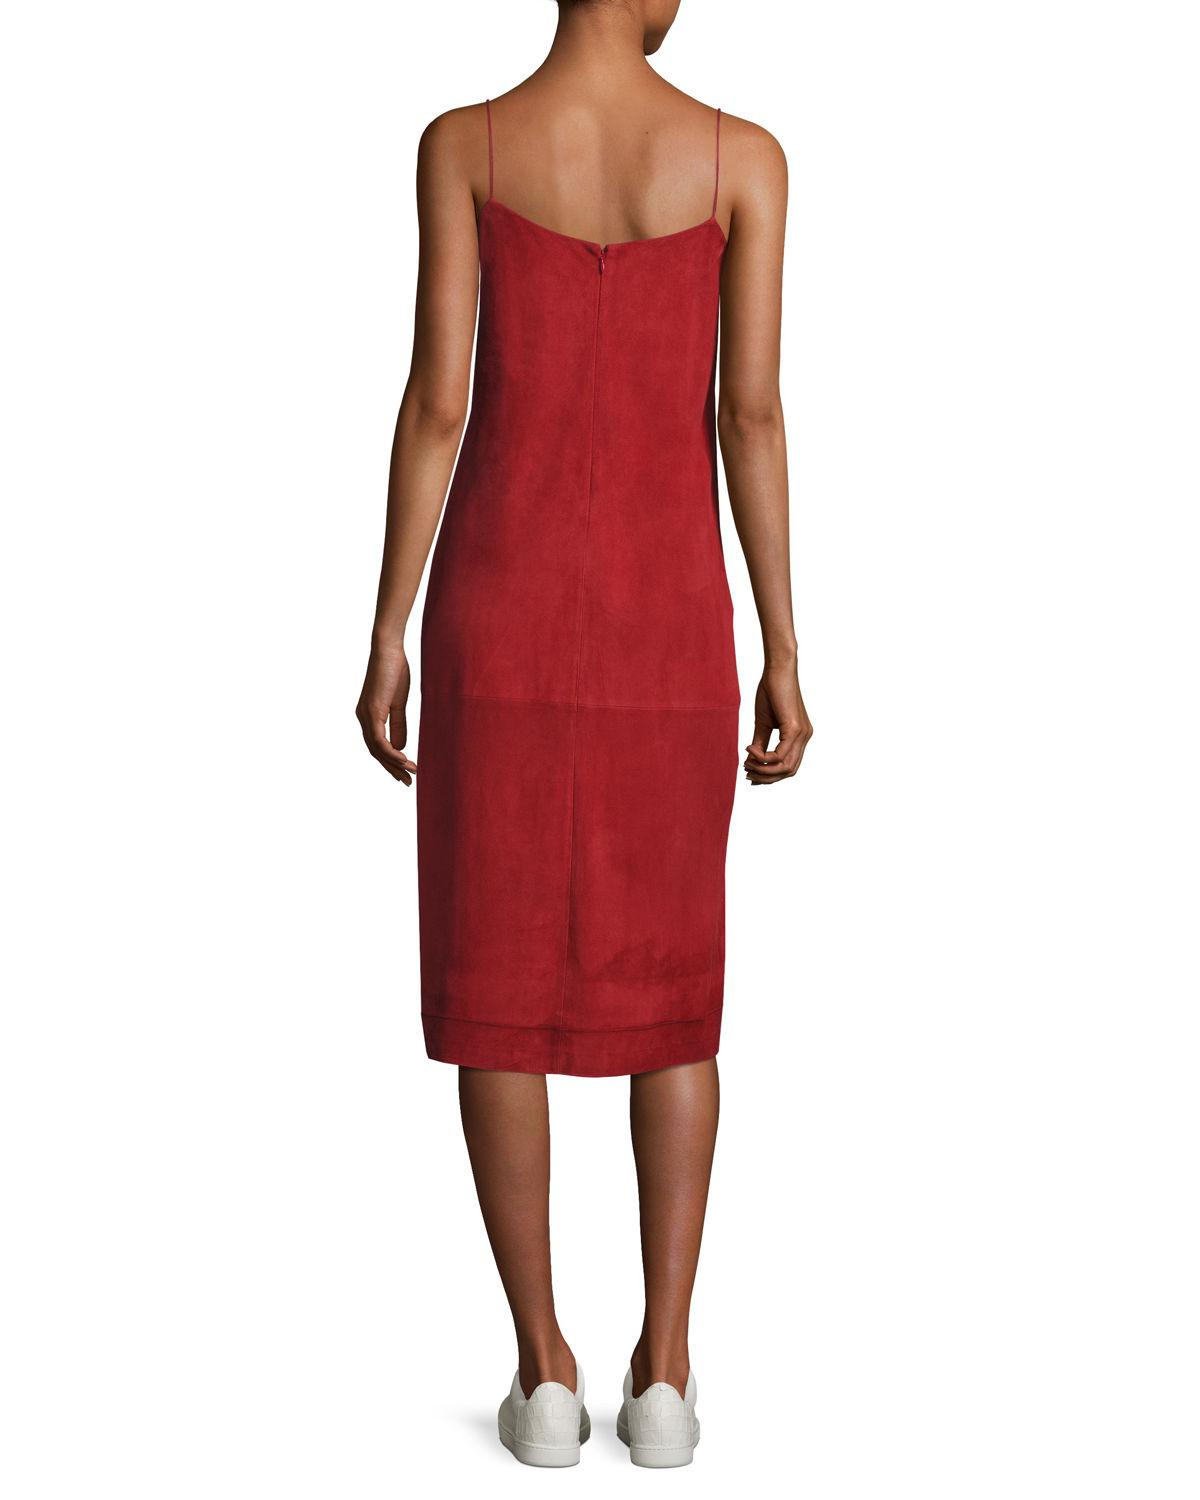 3c38502d72e4 Lyst - Theory Telson S Metises Suede Midi Dress in Red